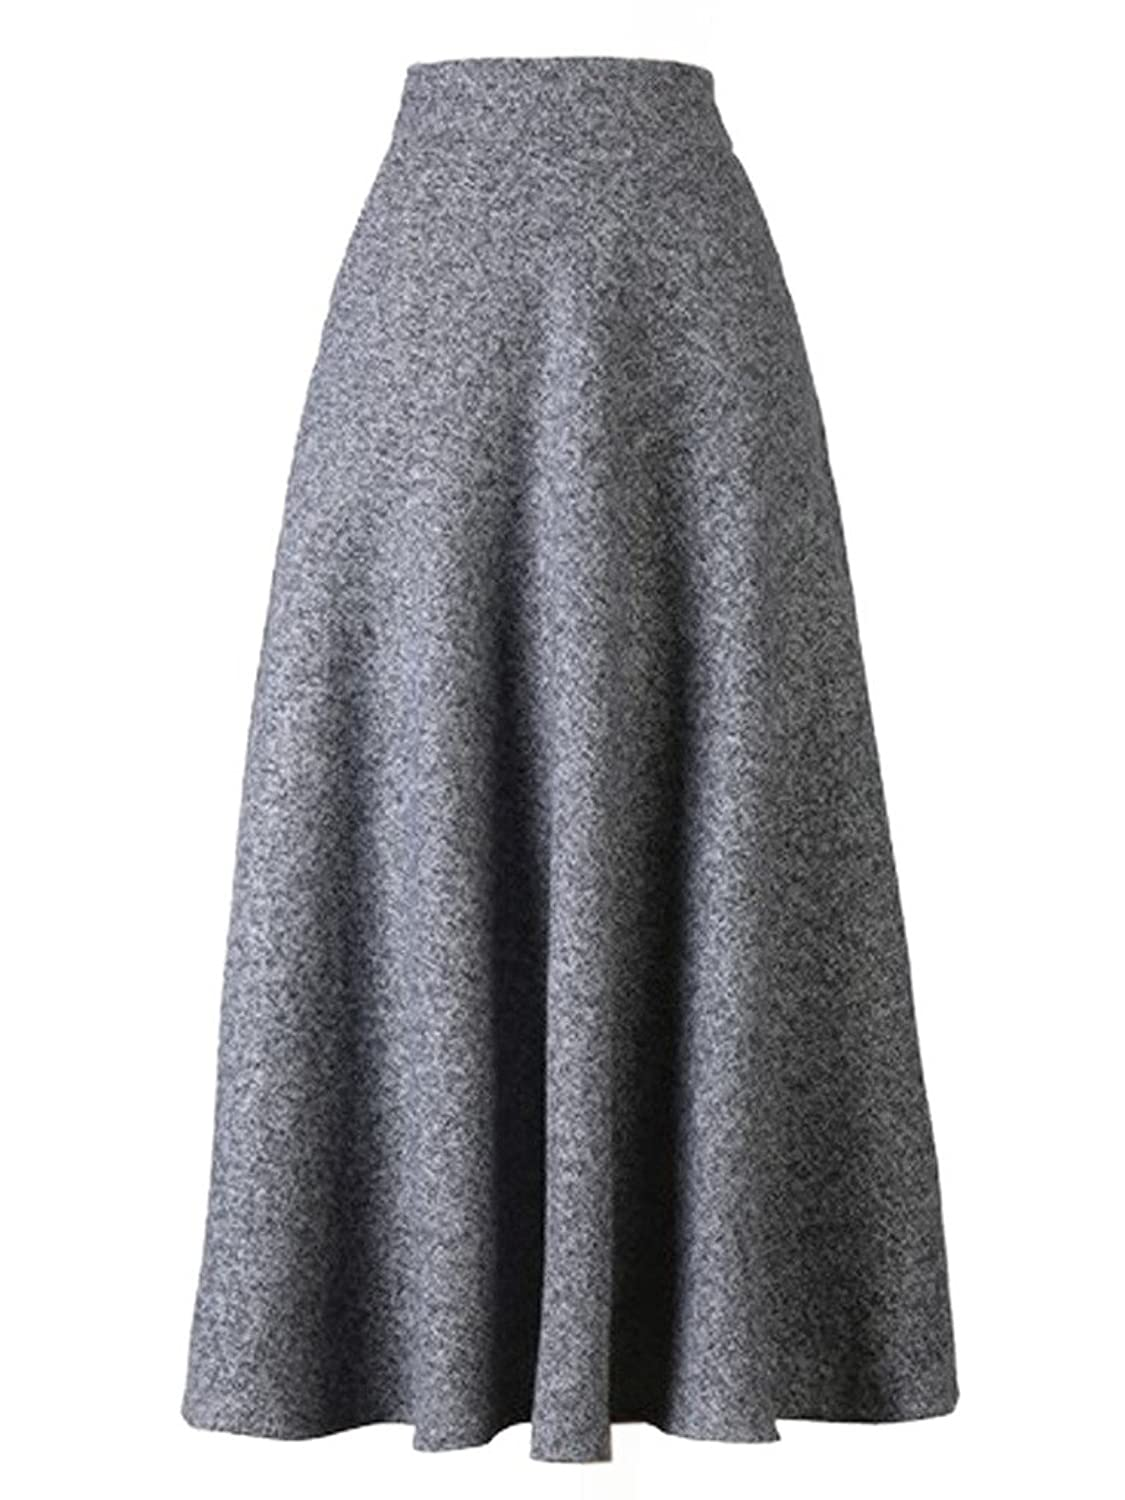 Wonder Woman Movie 1918 Clothing: Diana's London Costumes Choies Womens High Waist A-line Flared Long Skirt Winter Fall Midi Skirt $33.99 AT vintagedancer.com